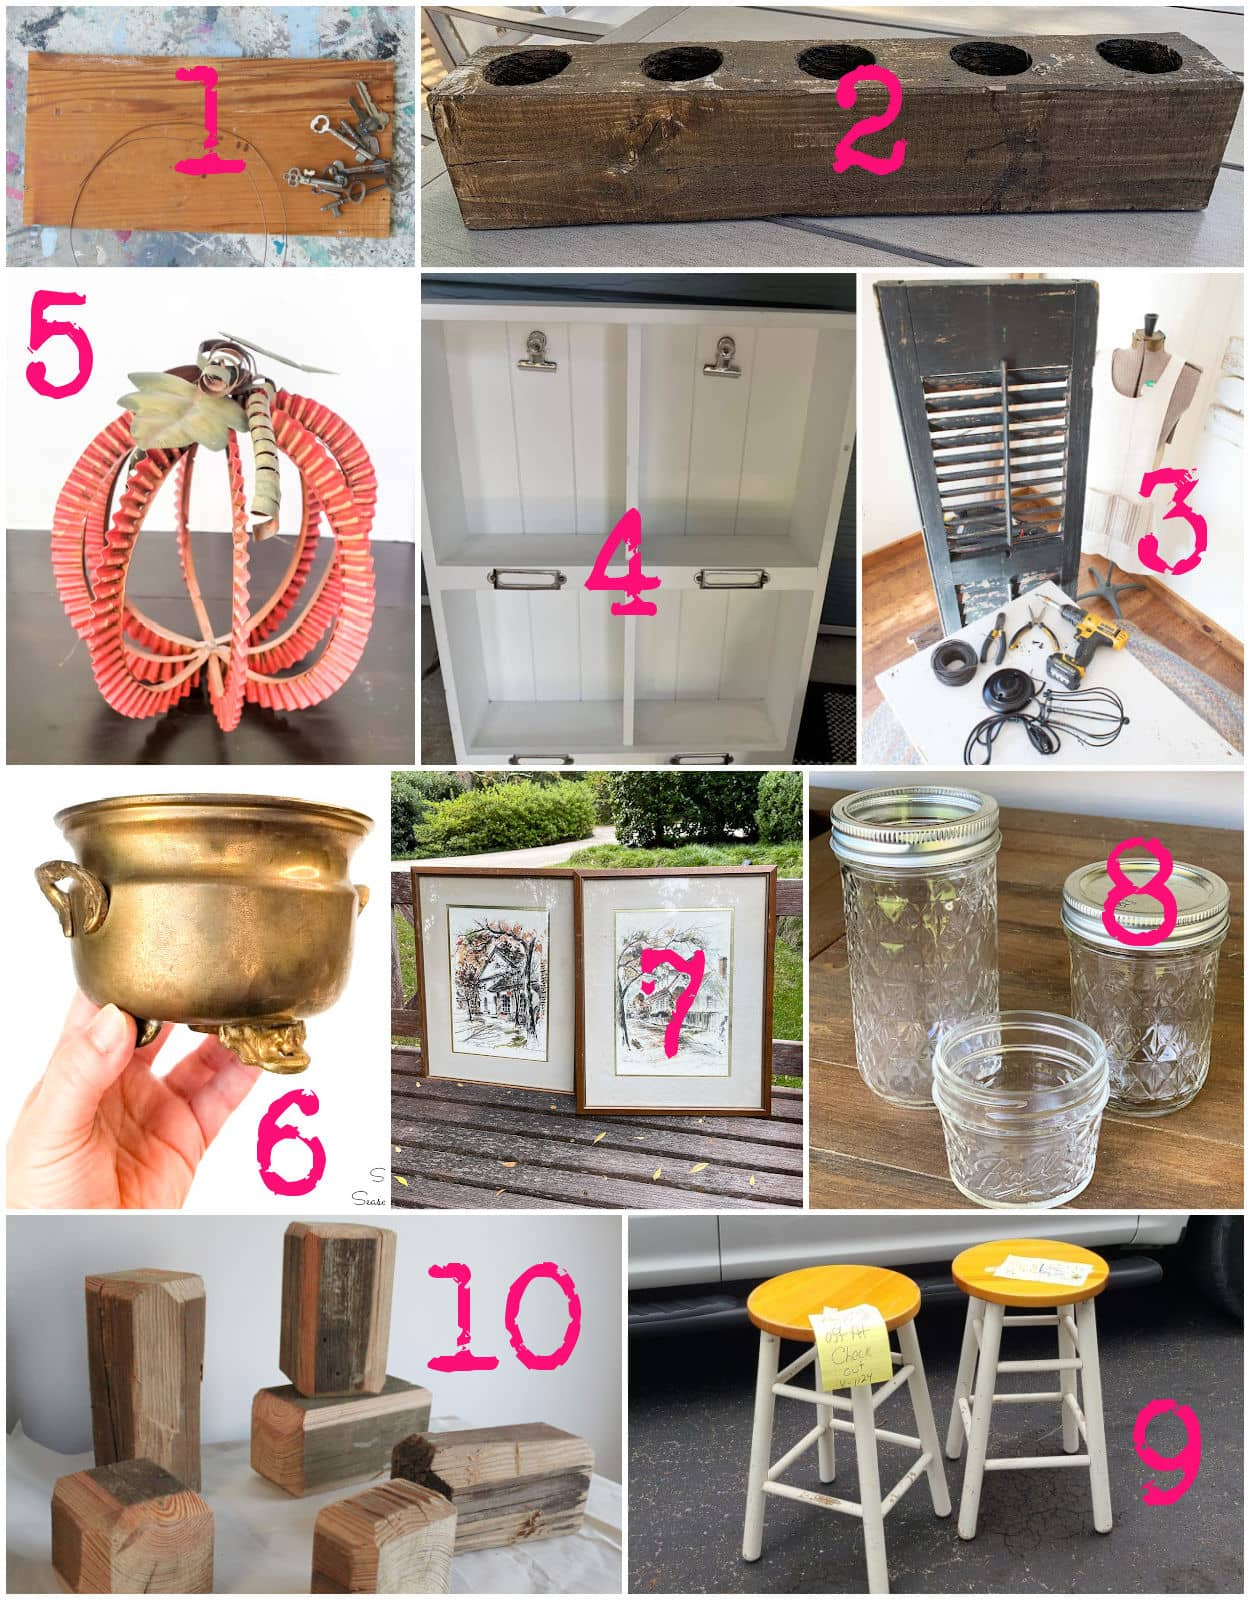 thrift store decor and upcycling ideas